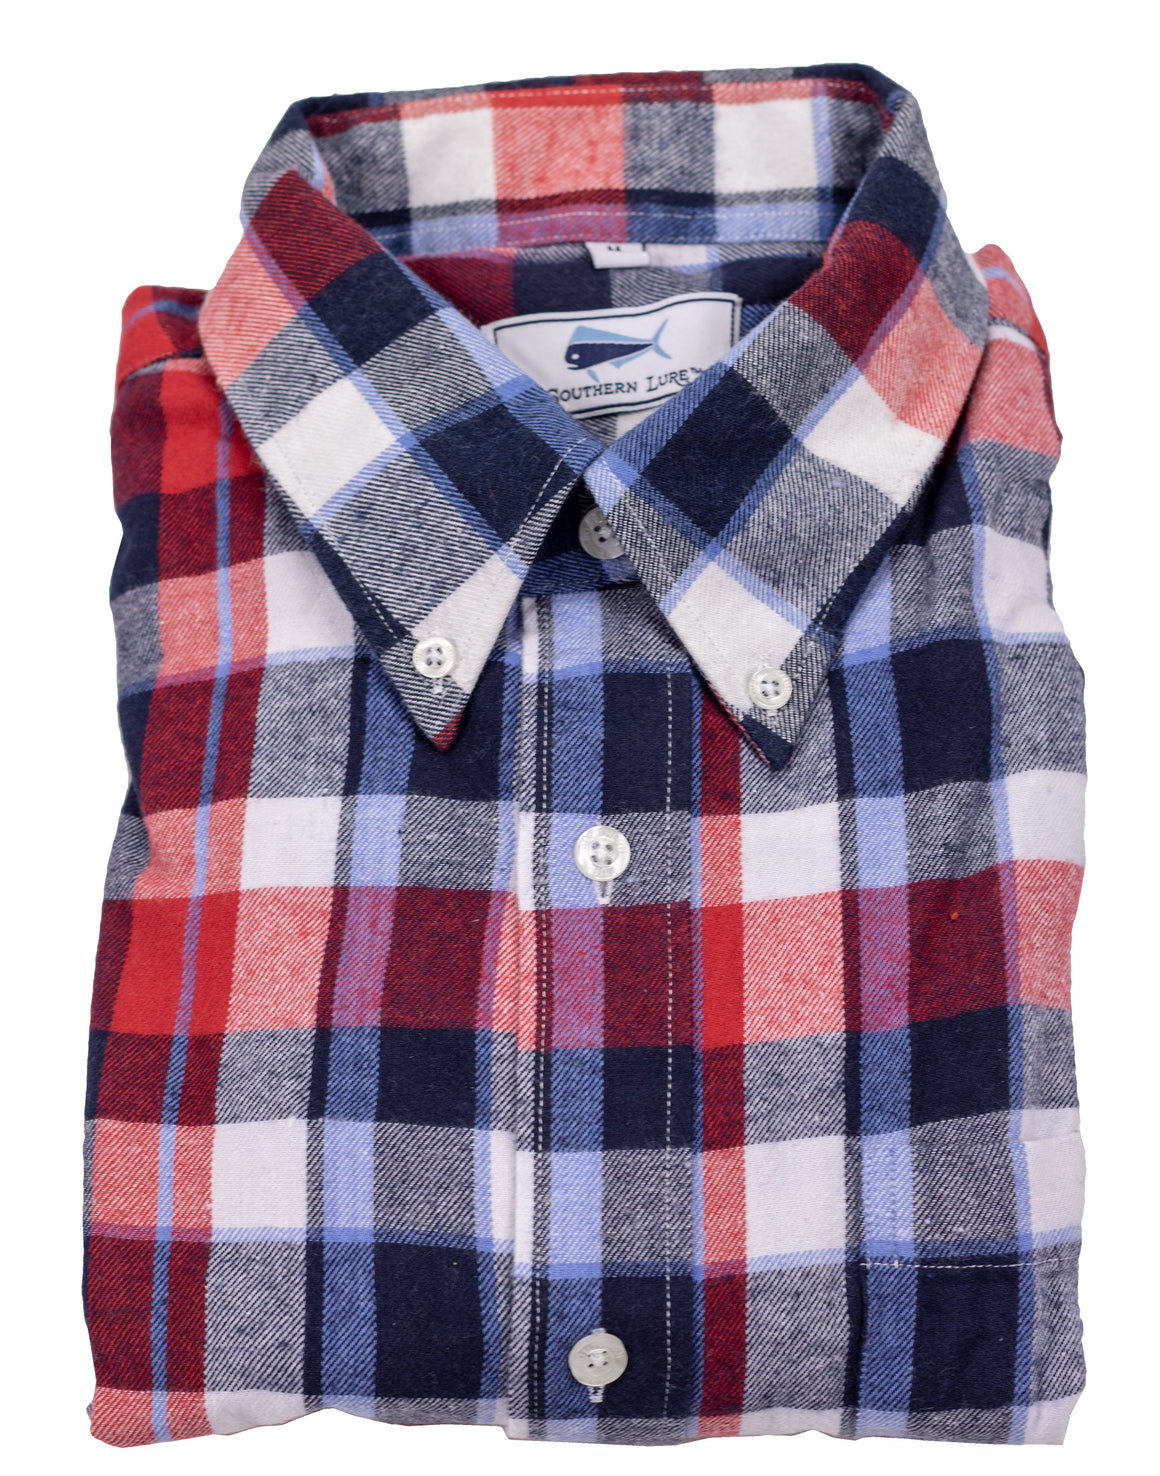 Flannel Shirt - Red/Blue/Navy